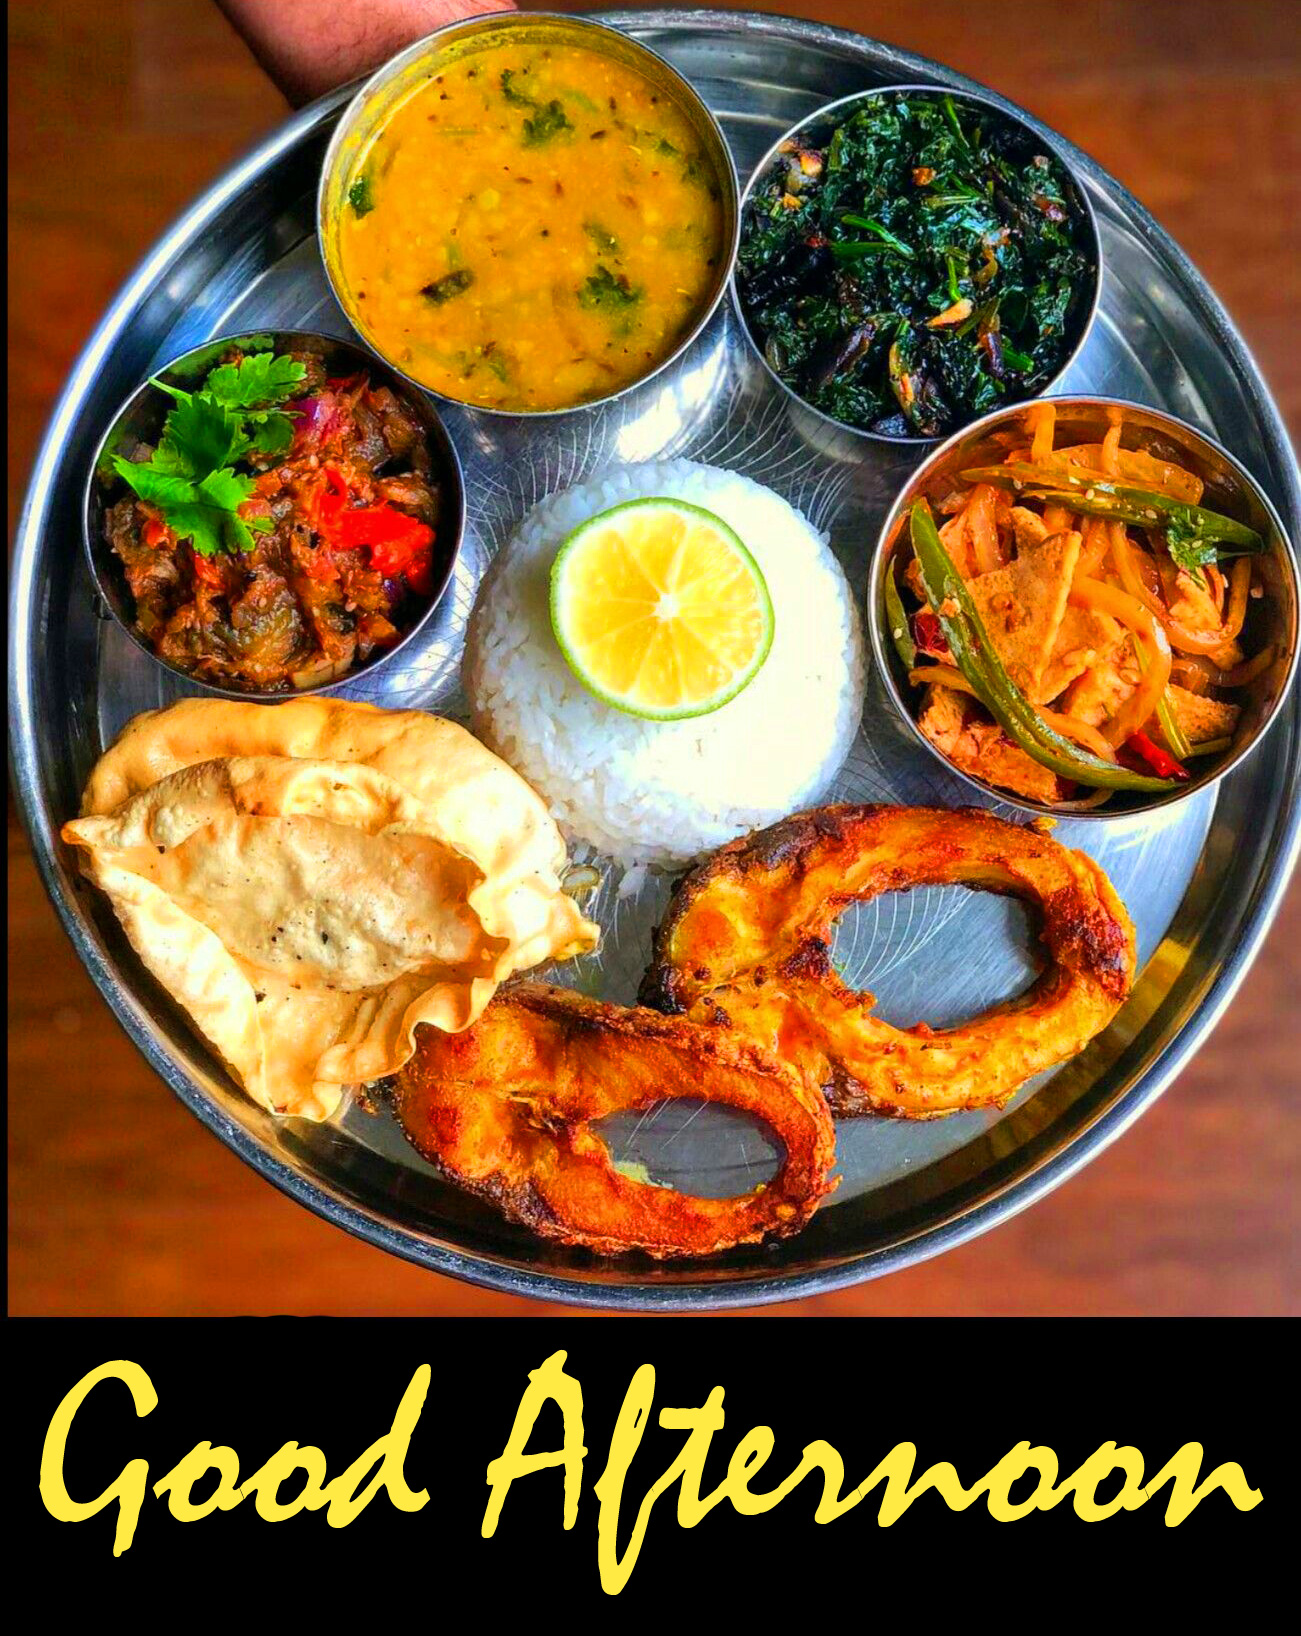 Good Afternoon Non Veg Fish Lunch Image